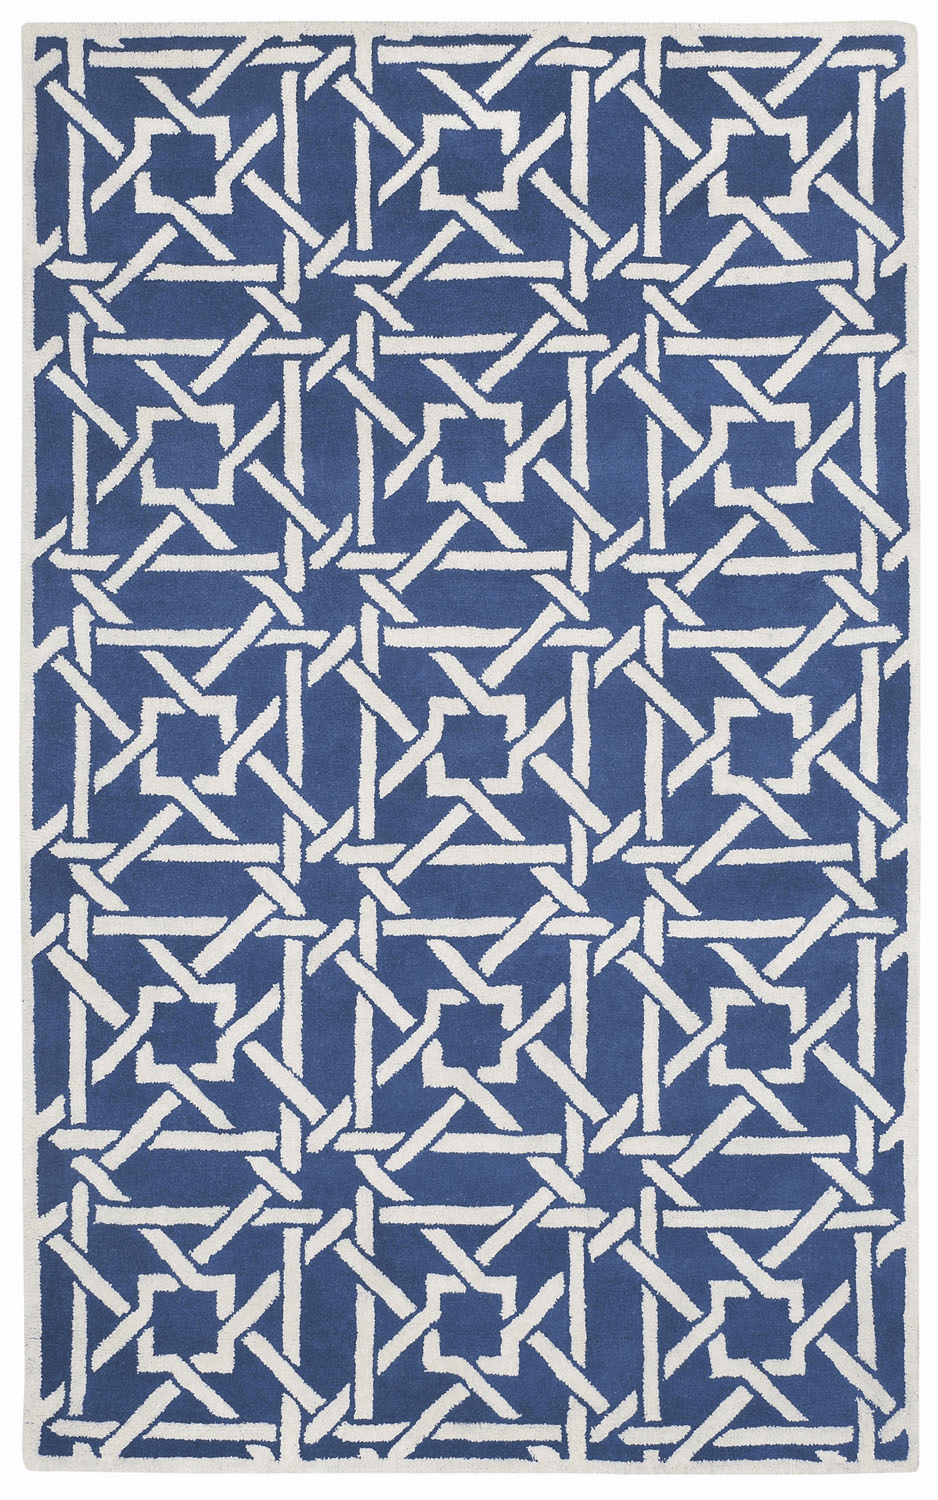 Hand Tufted Blue Beige Rug